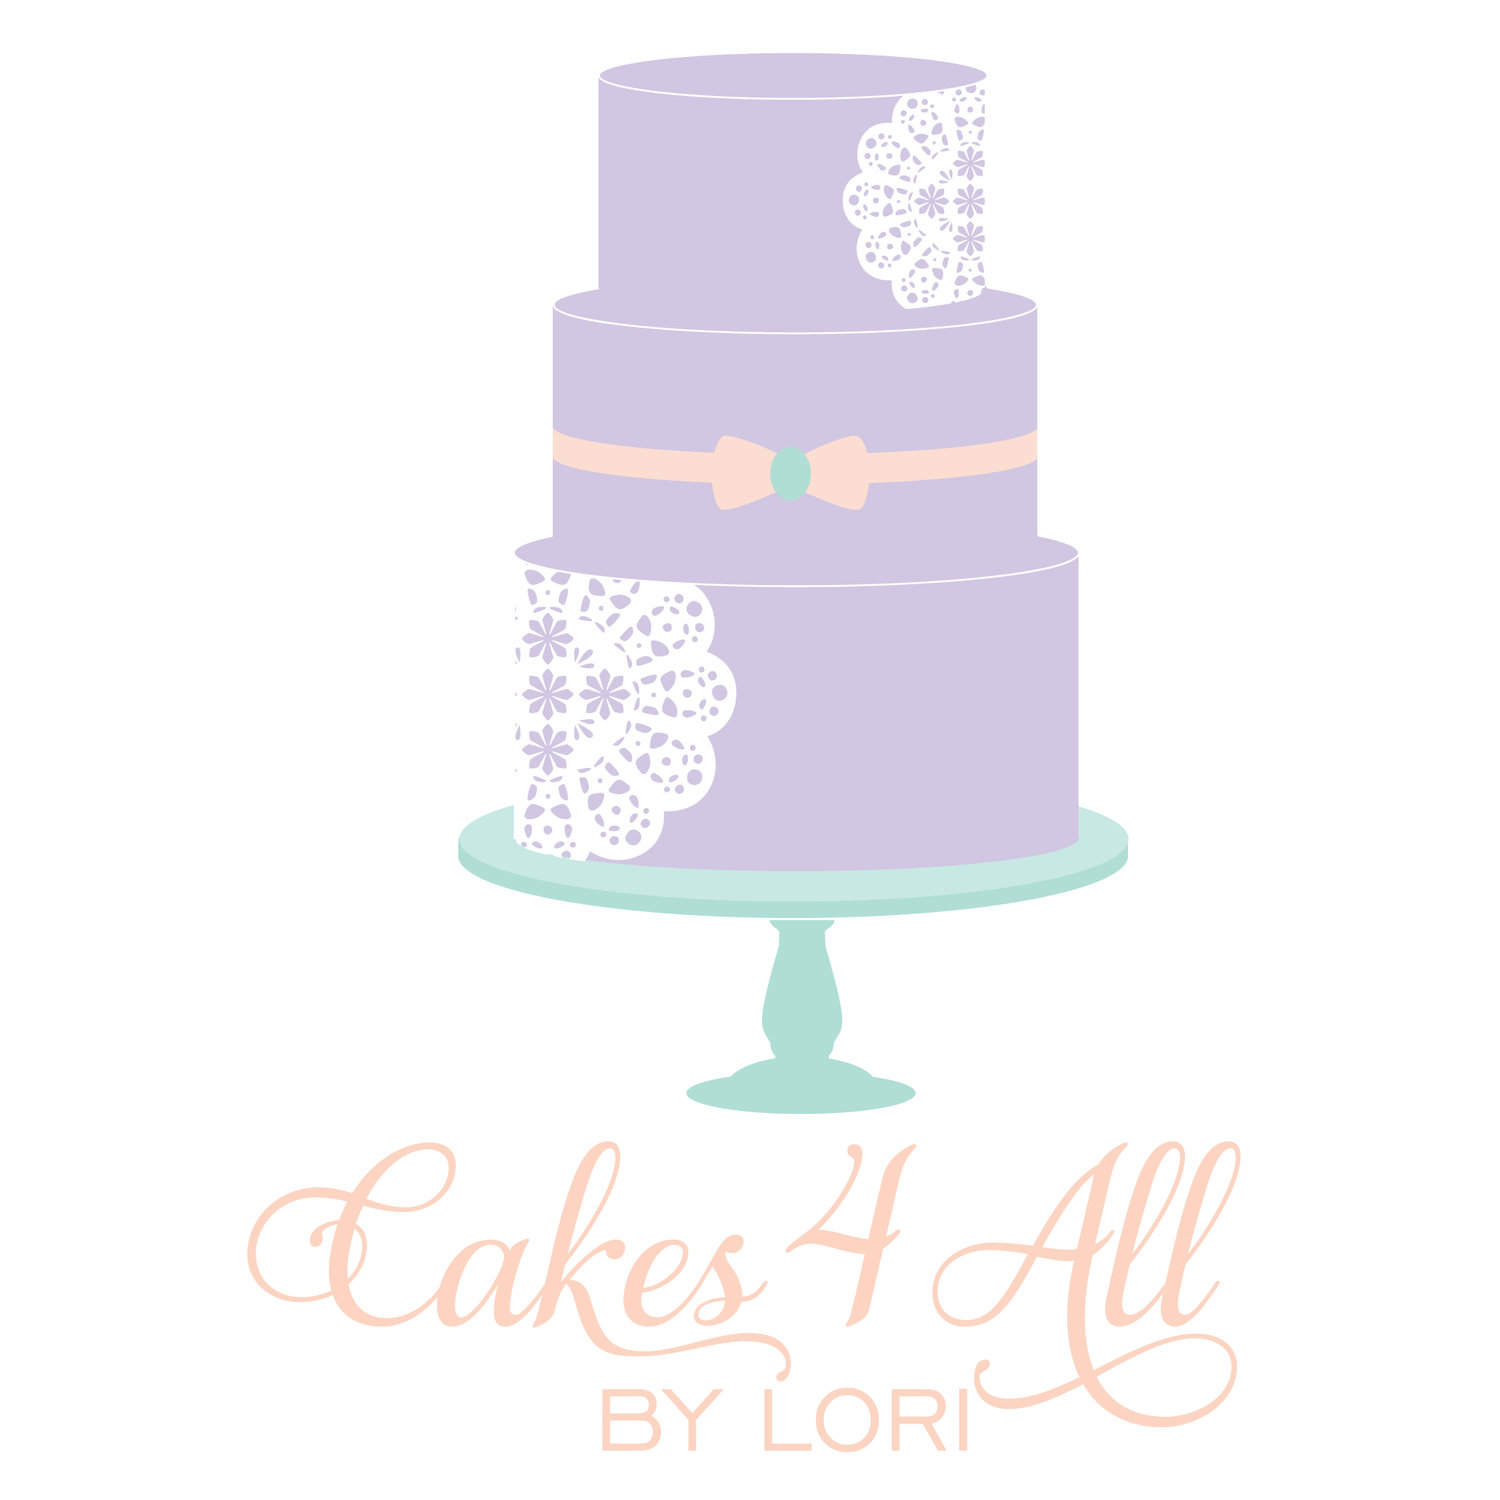 Cakes 4 All - by Lori